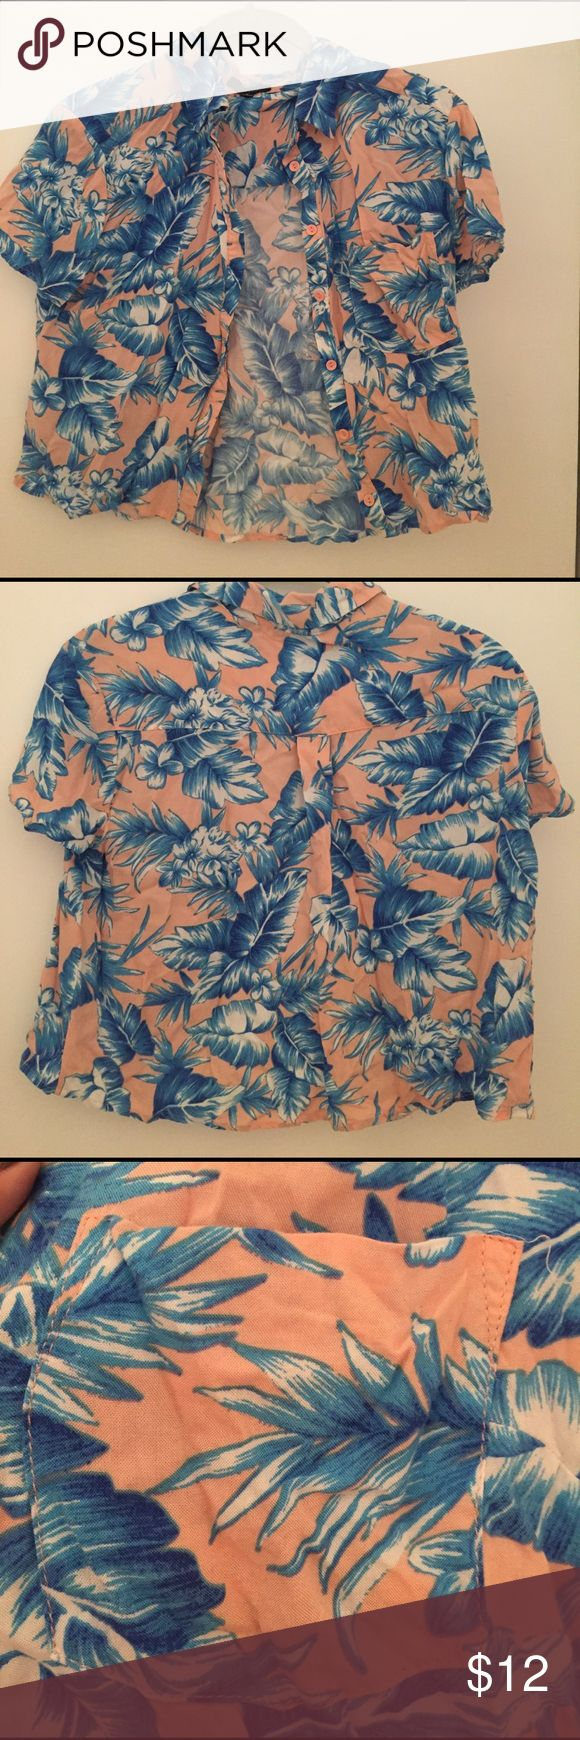 Tropical button-up crop top This crop top is so cute with button up closure. It is light pink with blue banana leaf/palm tree leaf design. It's a size small and fits like a crop top. Has been used but is very clean/washed, just some slight wrinkling. Nothing a little ironing can't fix! Unfortunately I don't own an iron so I can't do it myself. It has a front pocket and cute pink buttons. Perfect for this upcoming spring/summer! timing Tops Crop Tops